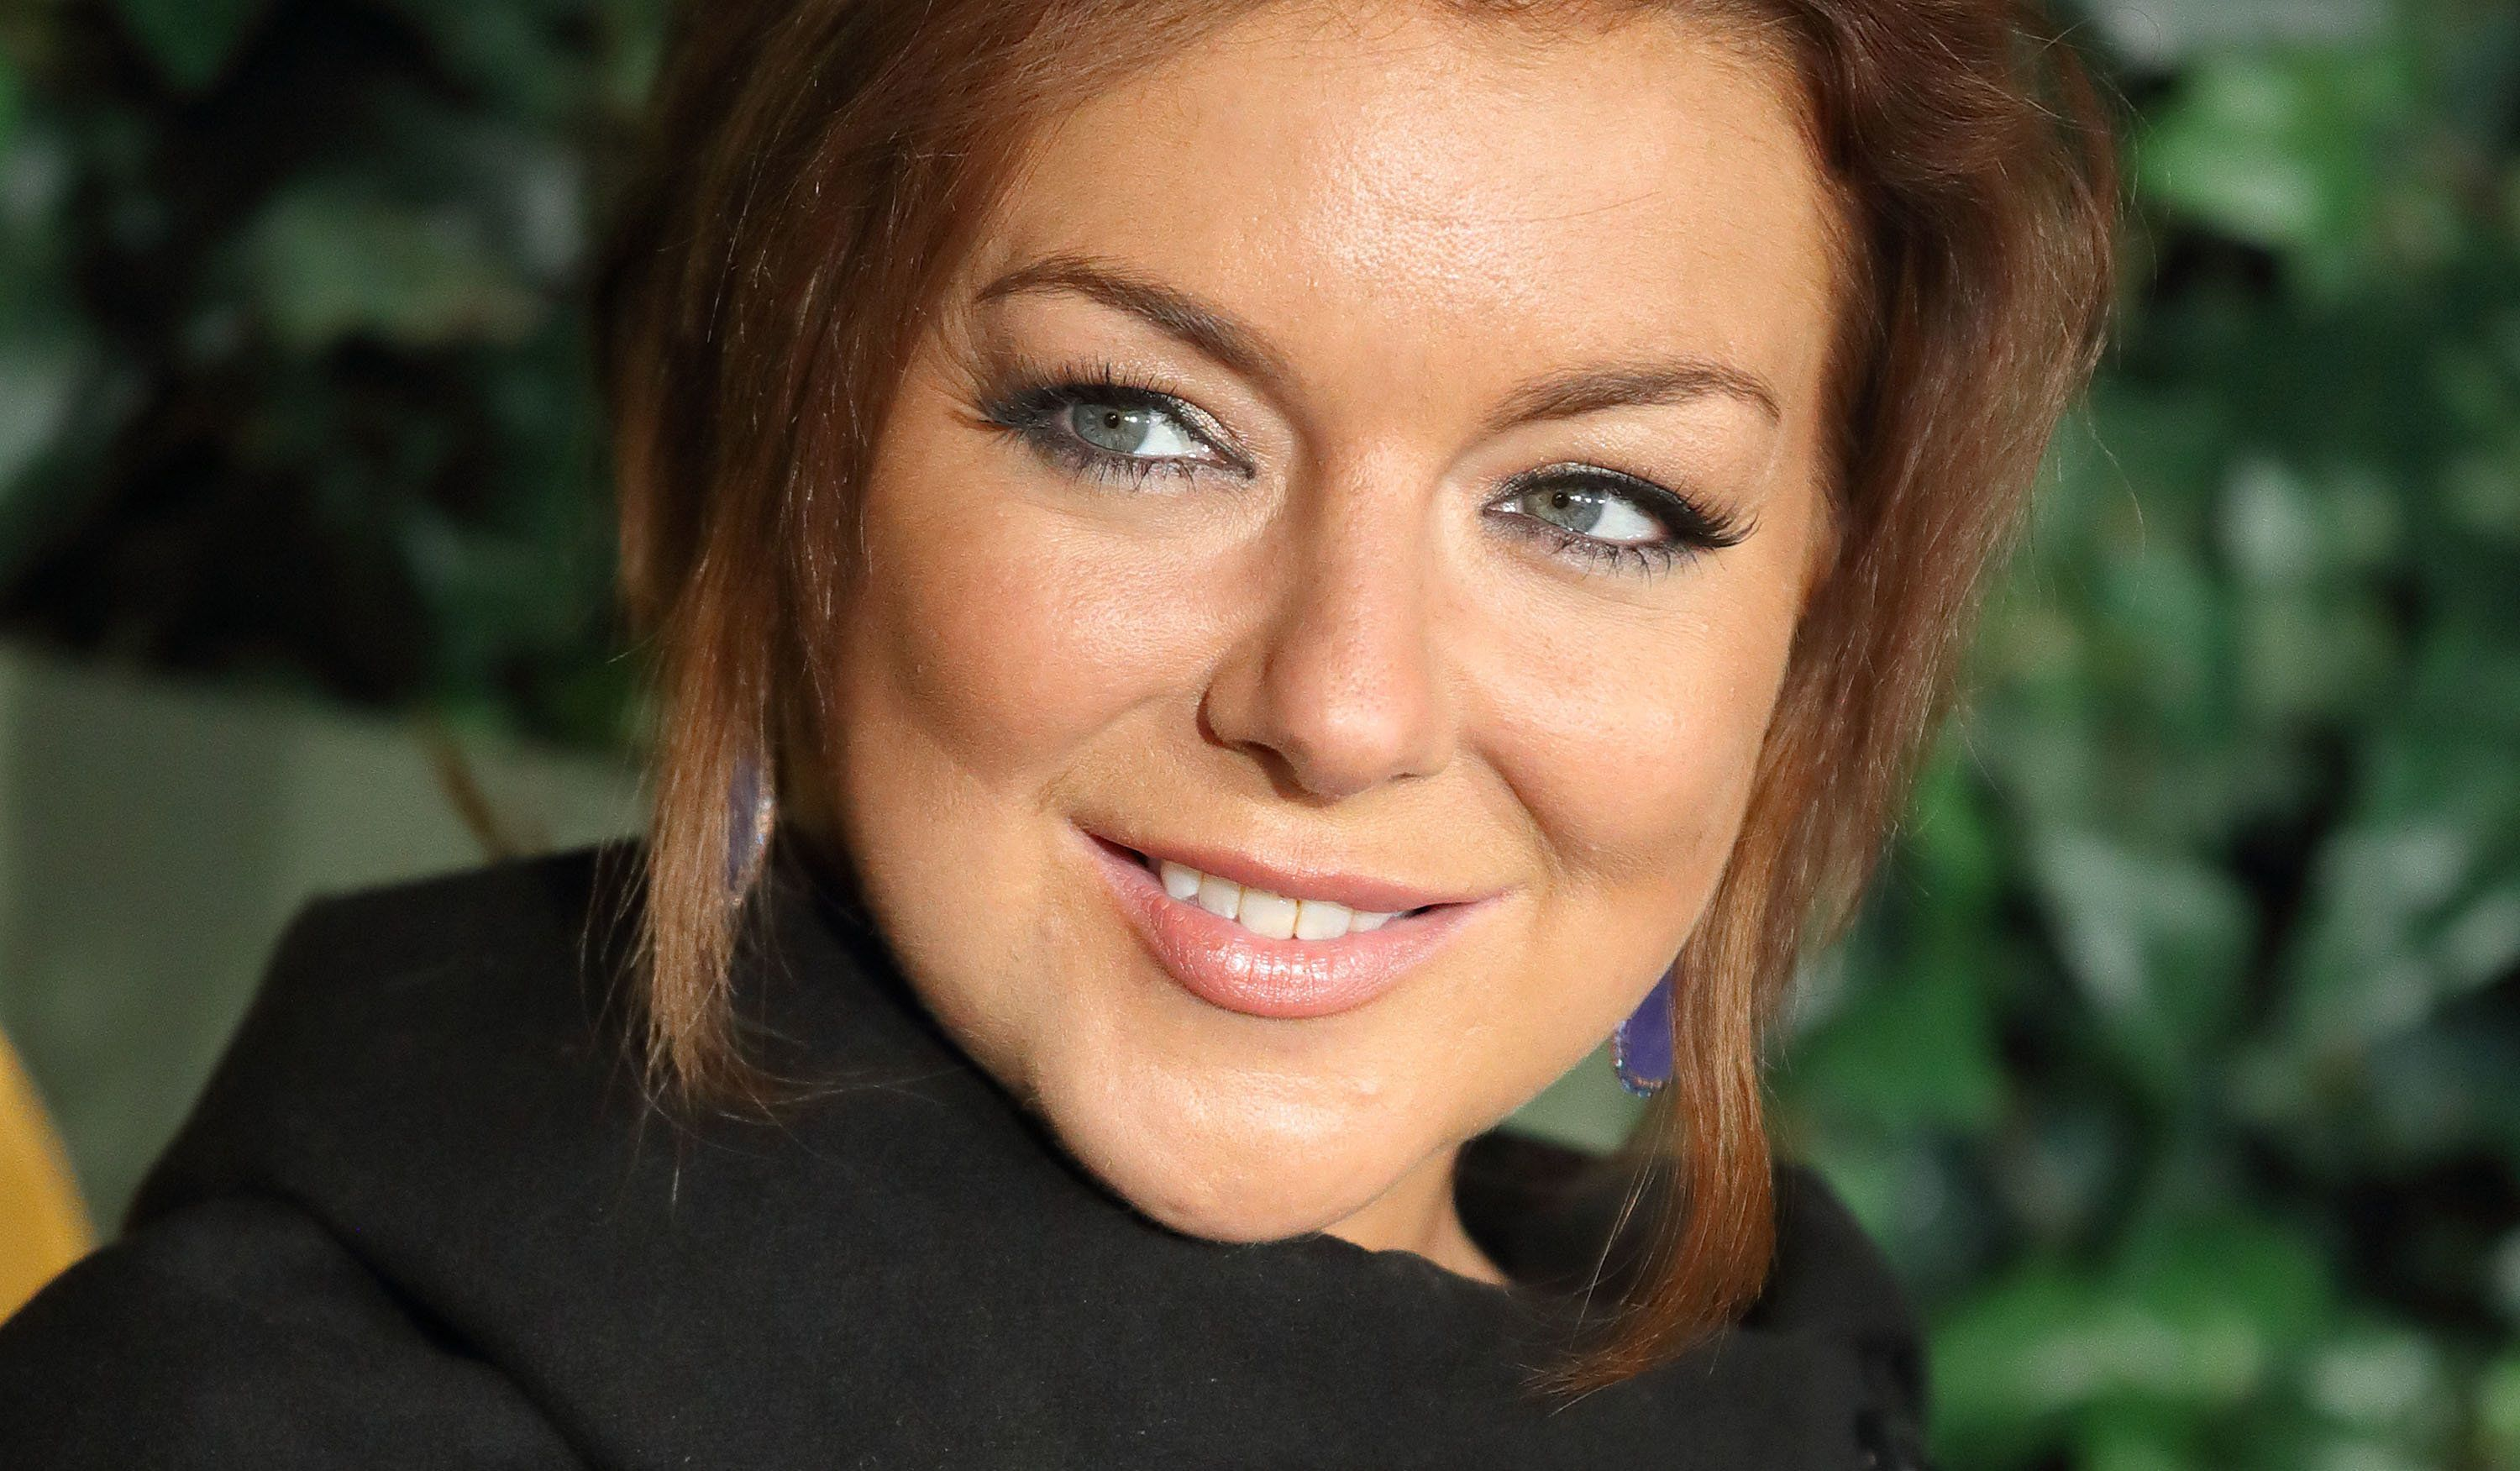 Sheridan Smith previously starred in 'Mrs Biggs' and 'Cilla' for